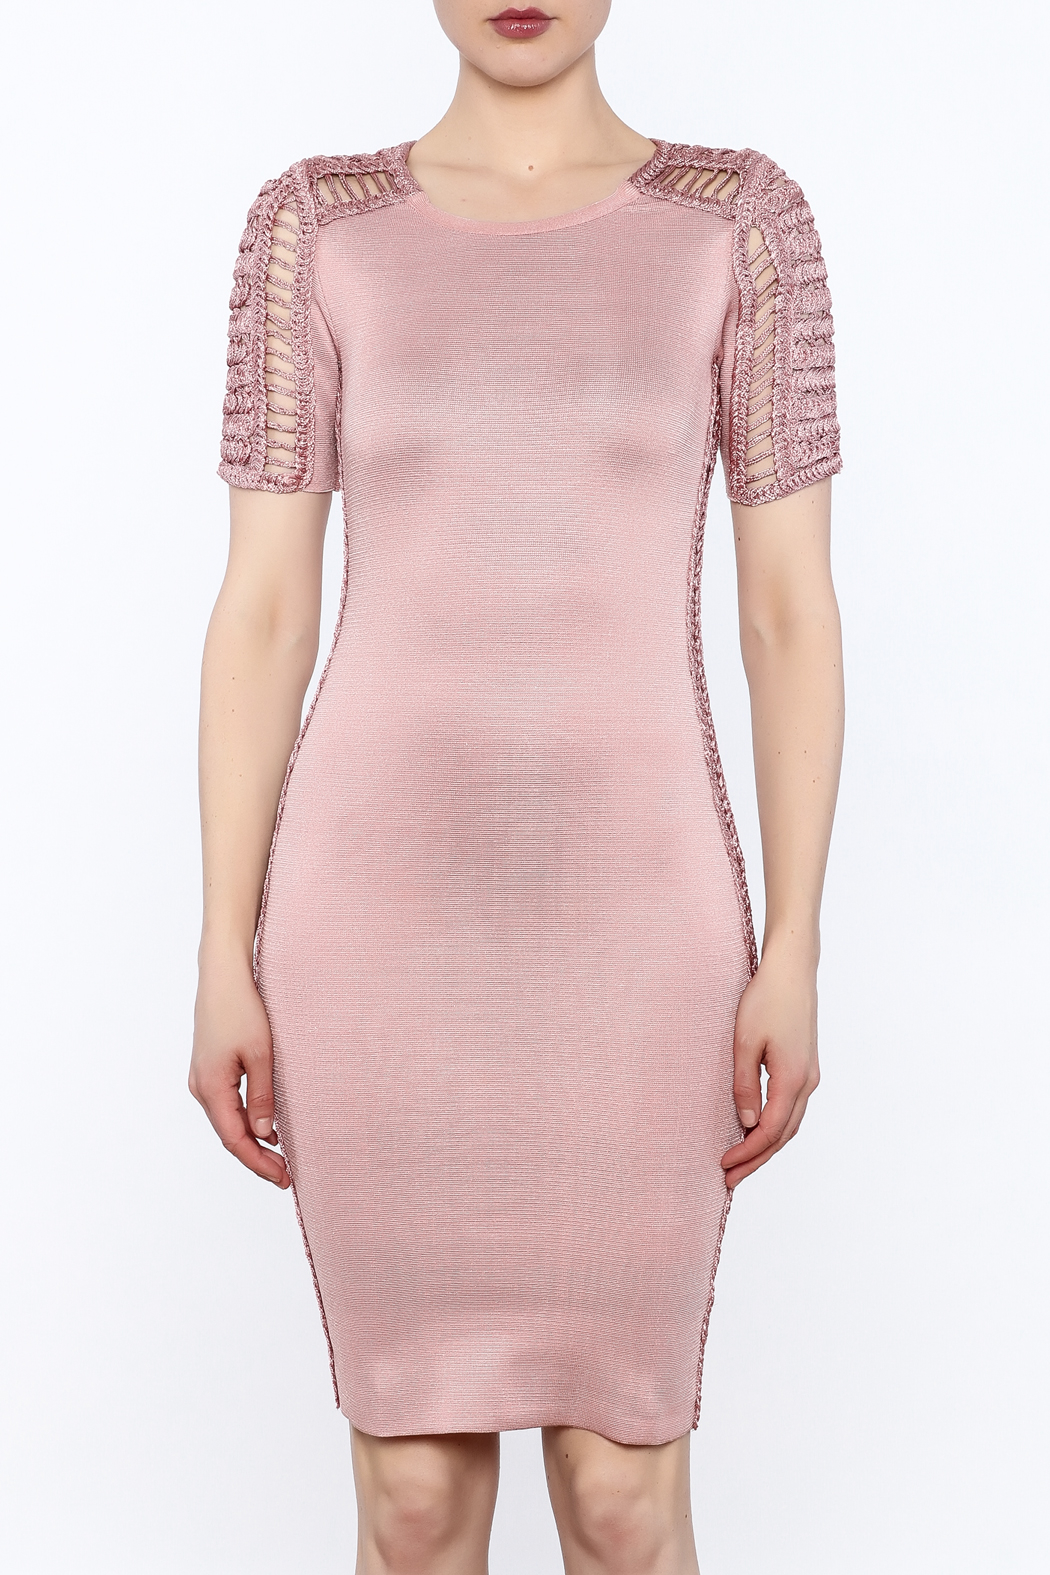 Heiress Boutique Pink Bandage Dress - Front Full Image